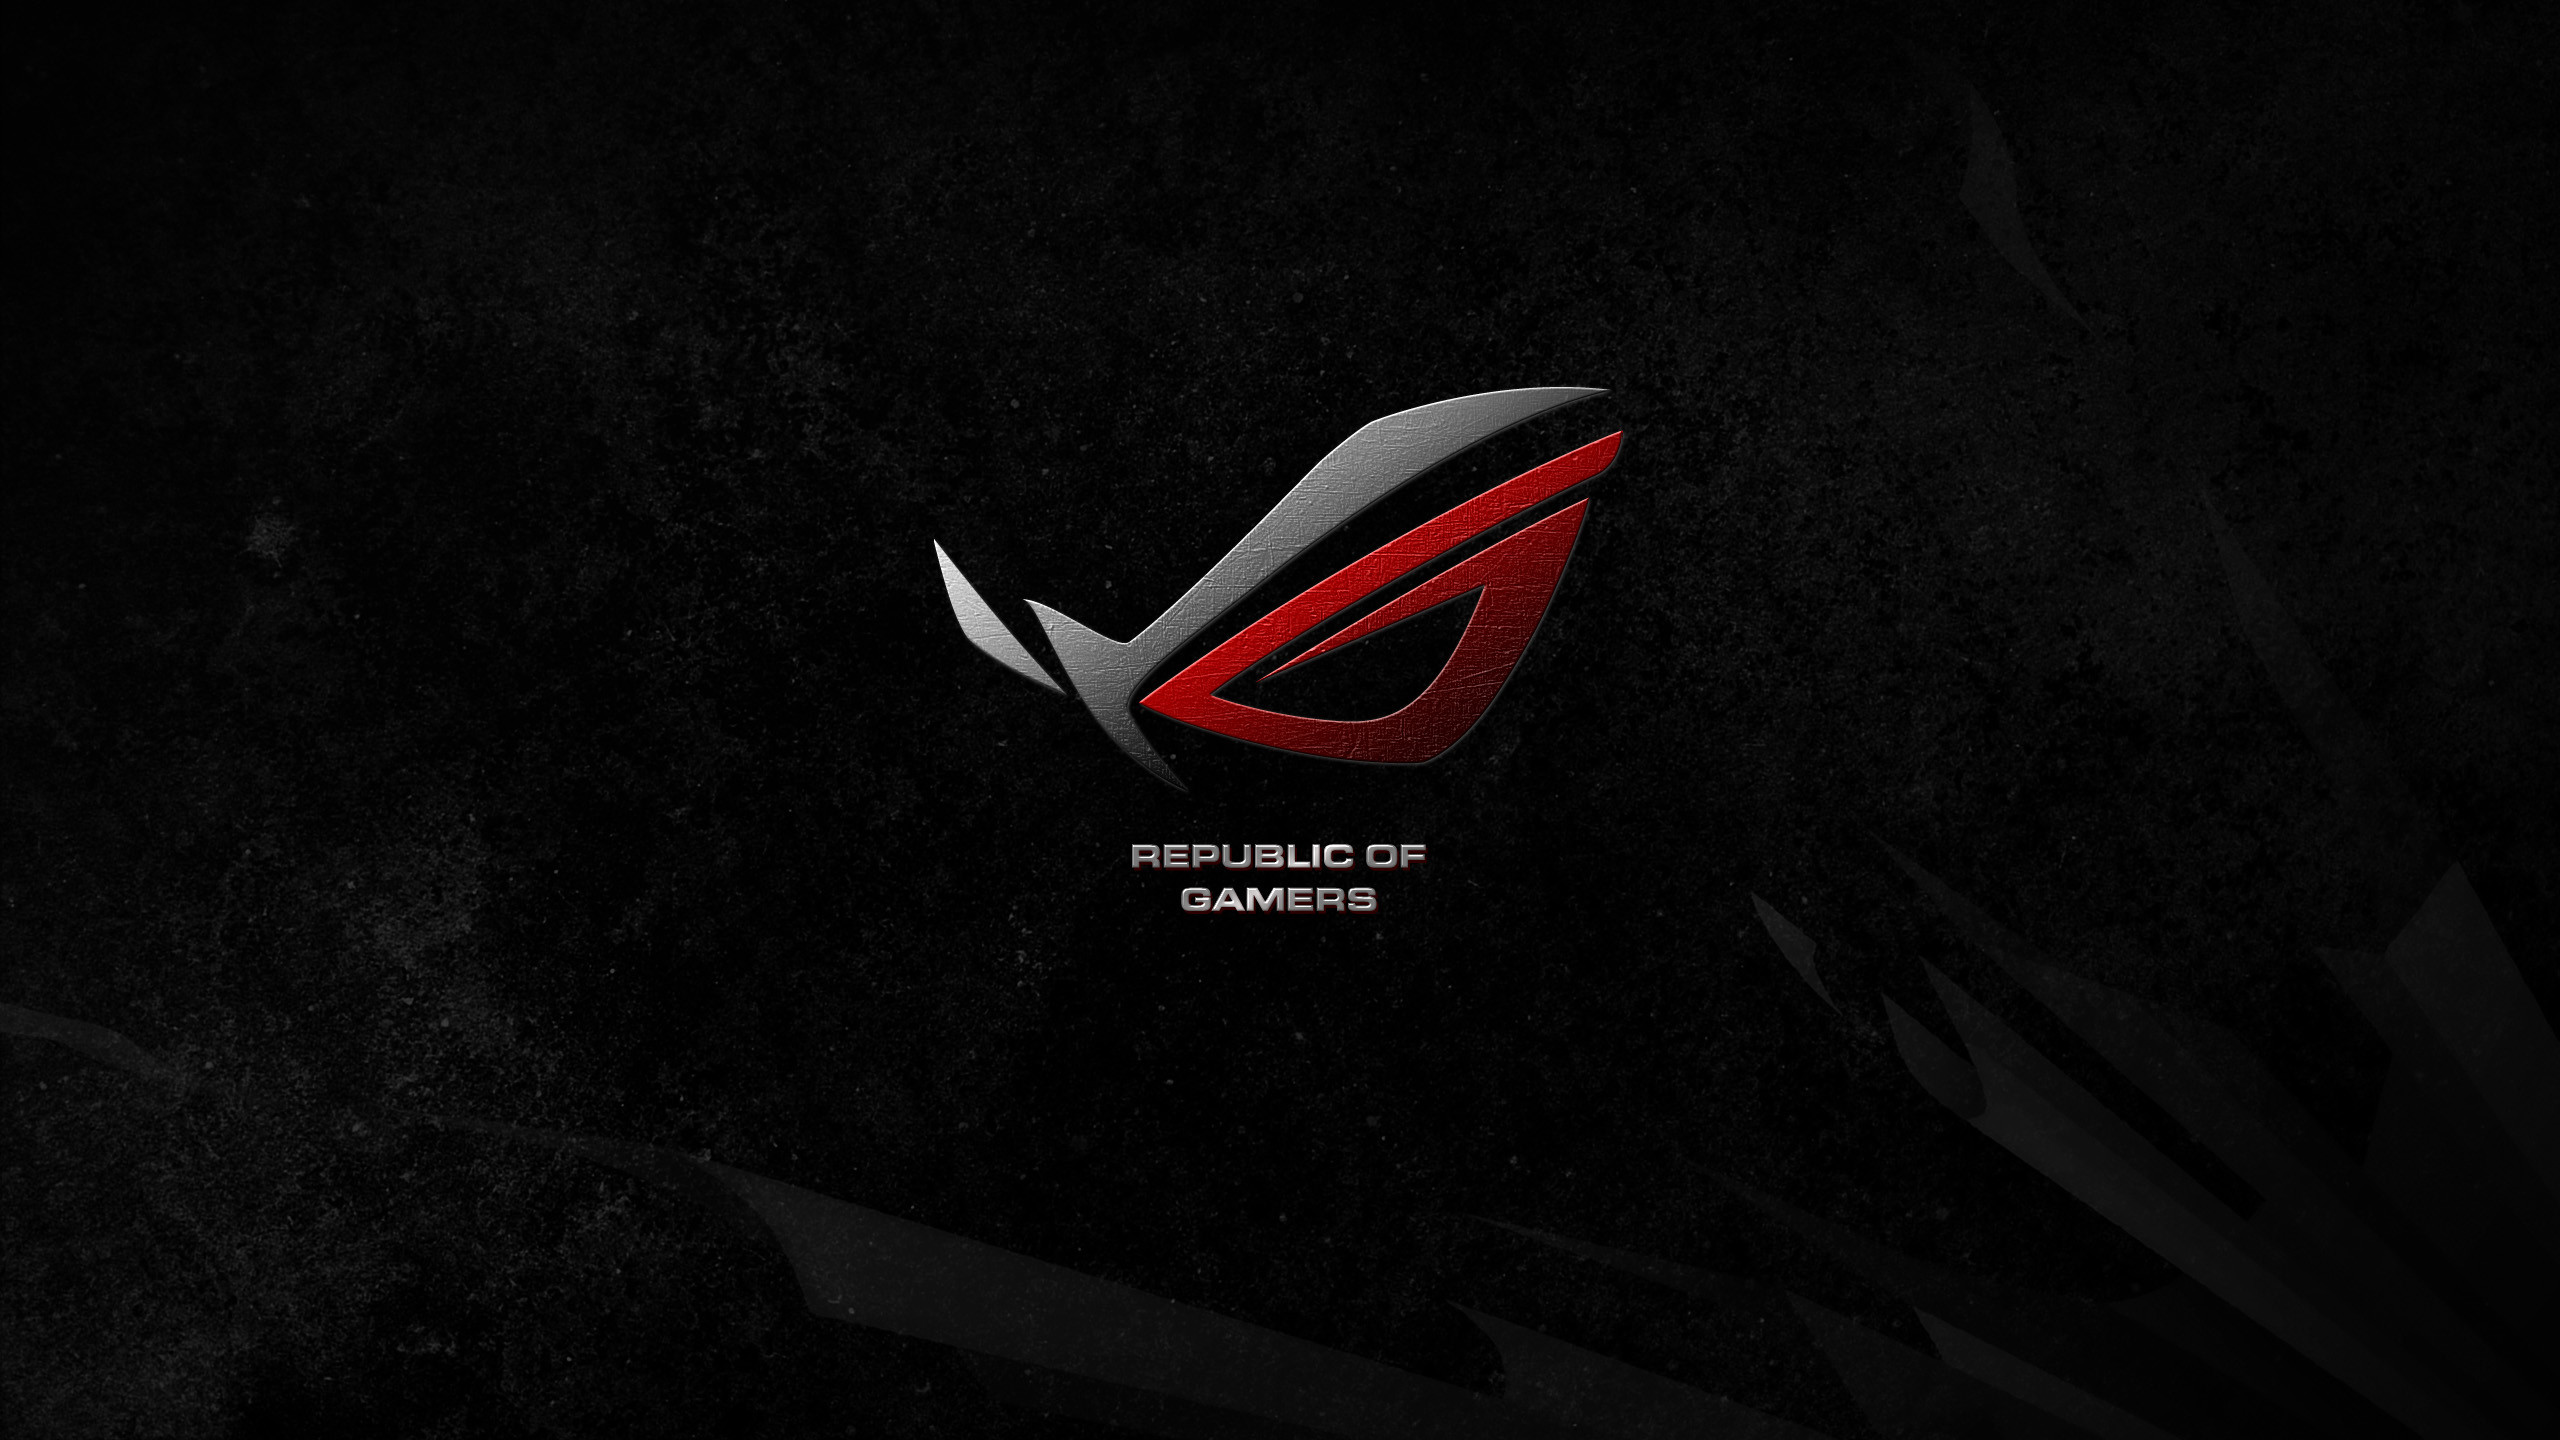 Asus Rog Images   TheCelebrityPix